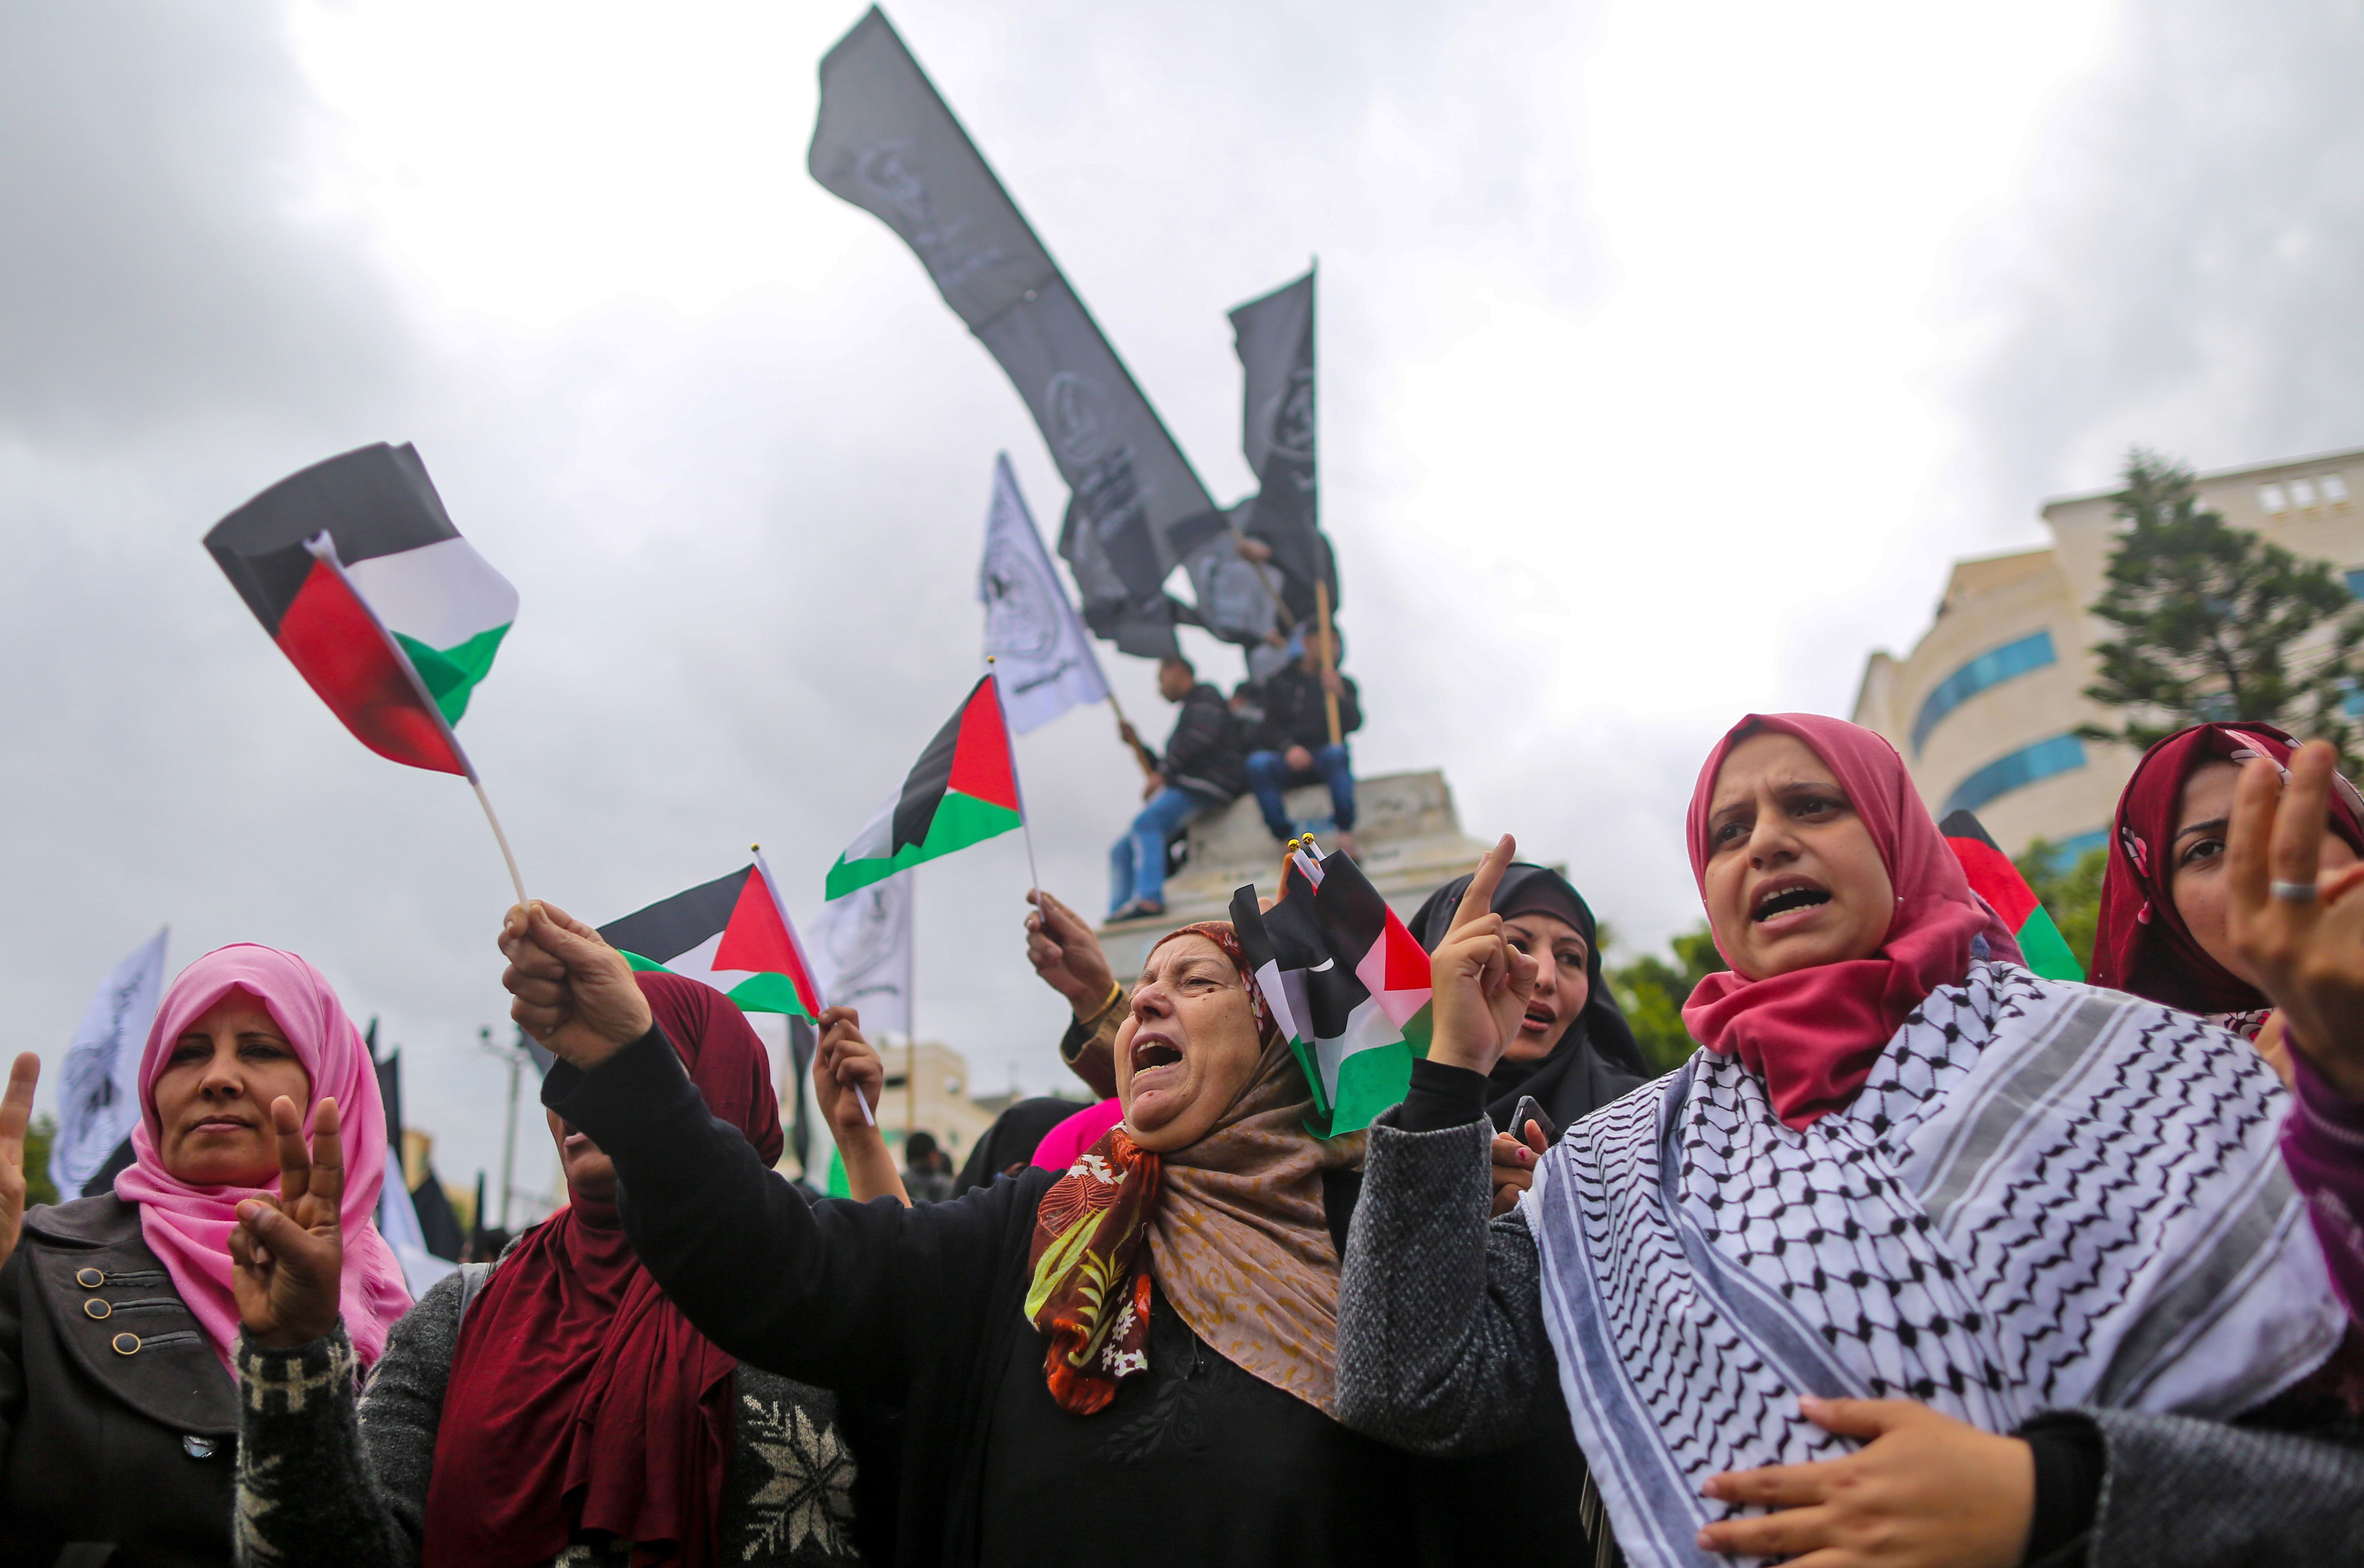 Palestinian women shout slogans during a protest in Gaza City on December 6, 2017. President Donald Trump is set to recognise Jerusalem as Israel's capital, upending decades of careful US policy and ignoring dire warnings from Arab and Western allies alike of a historic misstep that could trigger a surge of violence in the Middle East. / AFP PHOTO / MAHMUD HAMS (Photo credit should read MAHMUD HAMS/AFP/Getty Images)